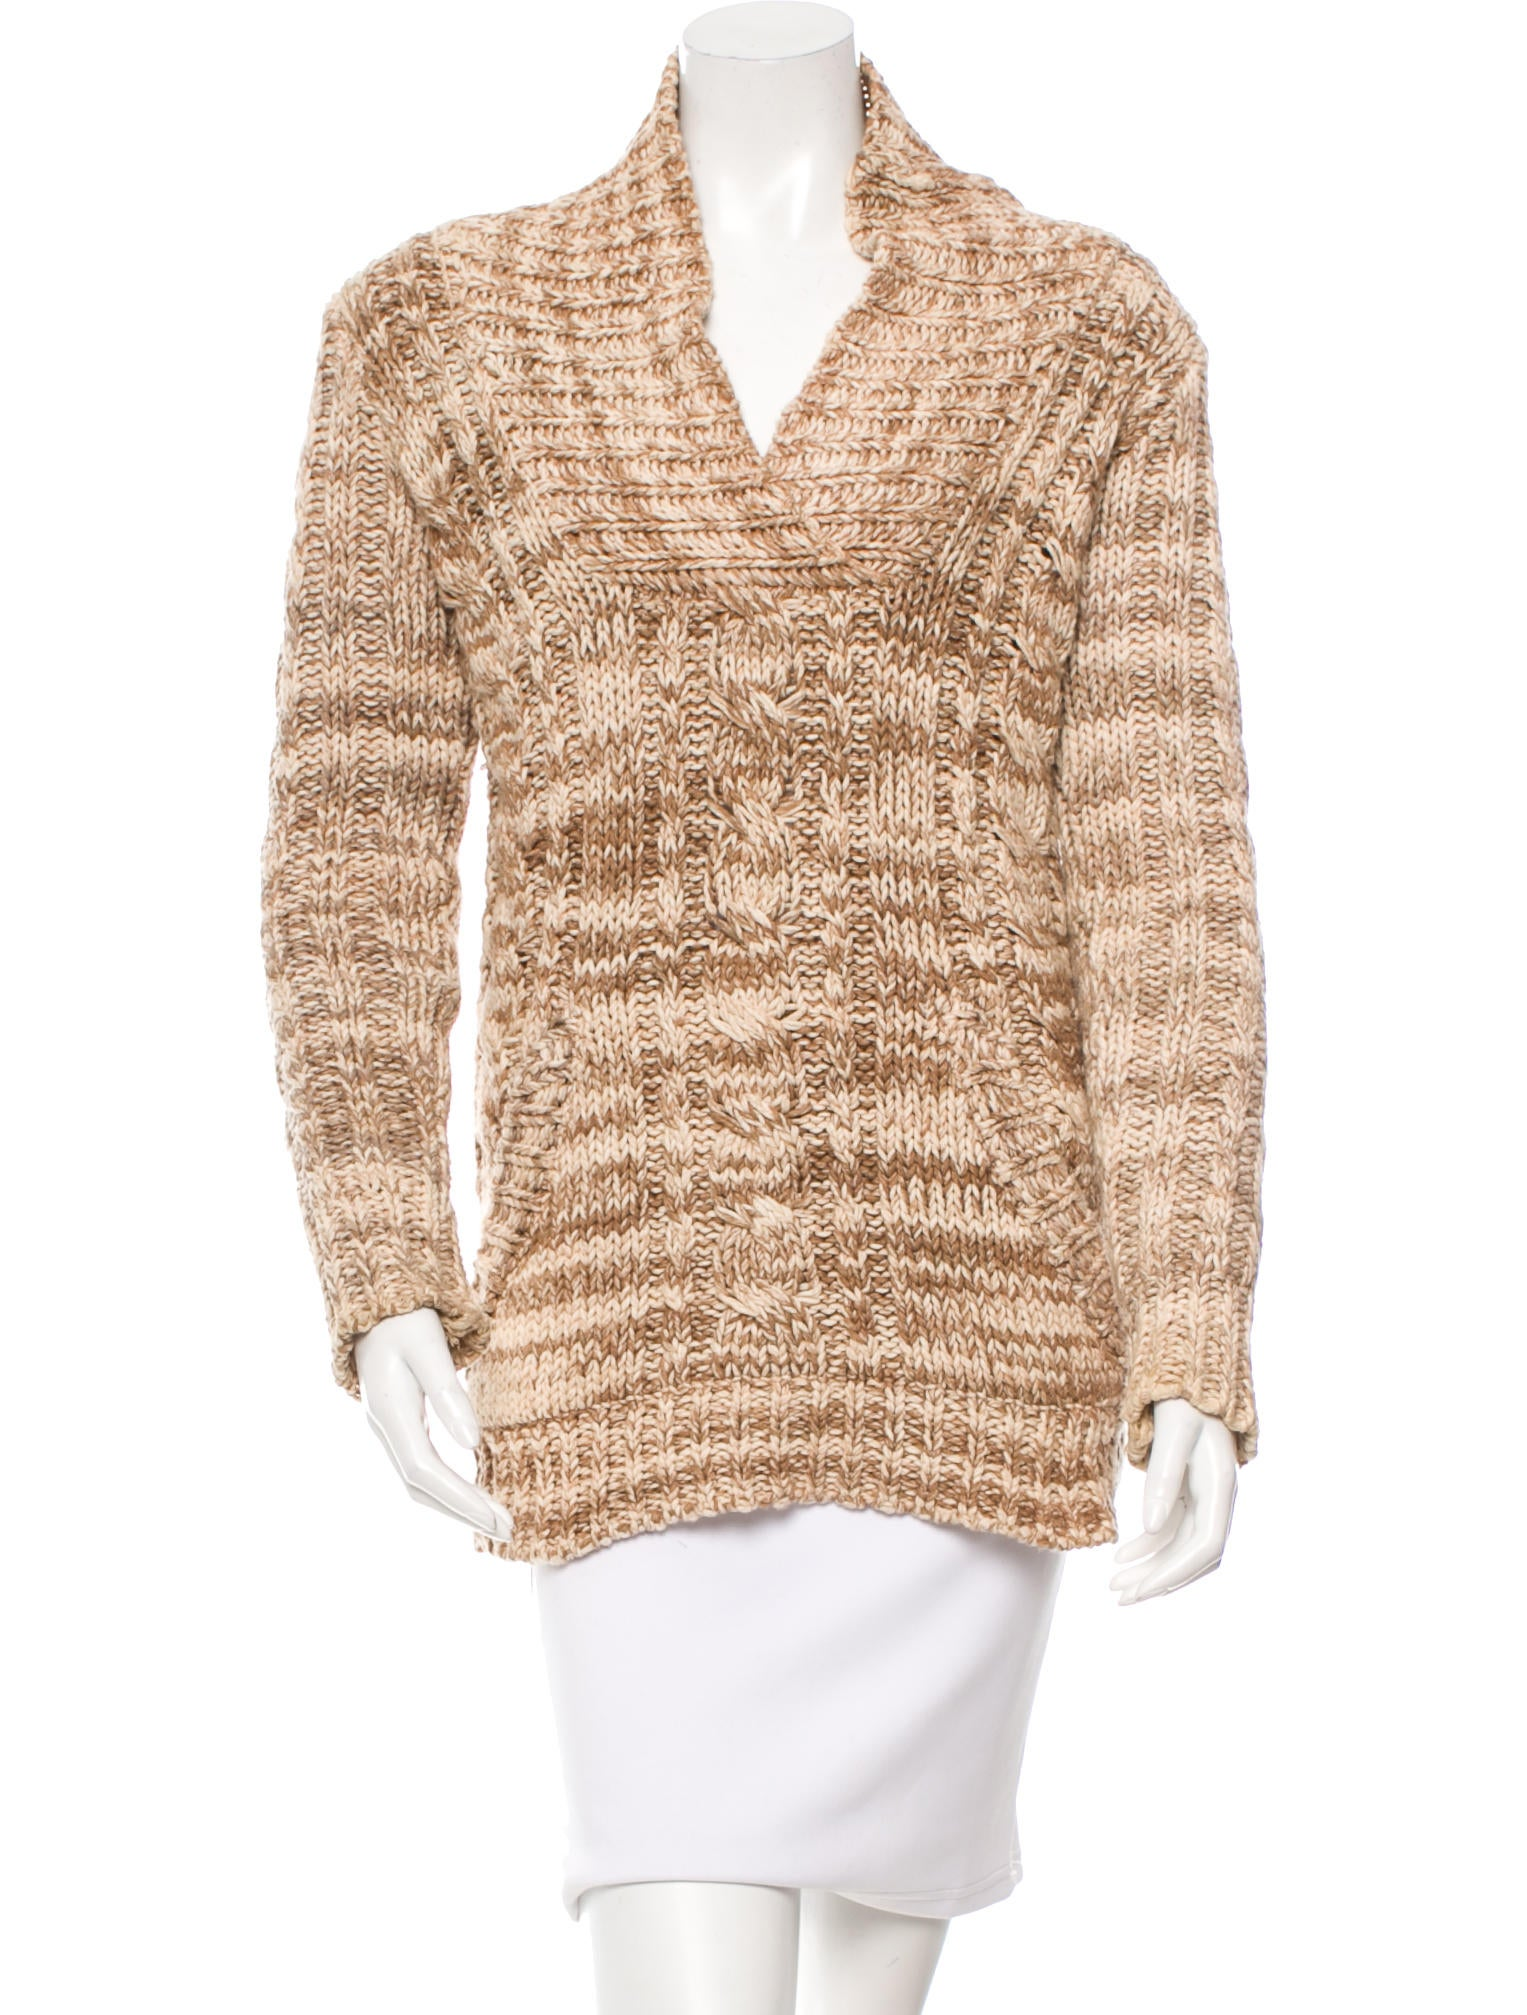 Anna Sui Chunky Knit Sweater - Clothing - ANA21866 | The ...